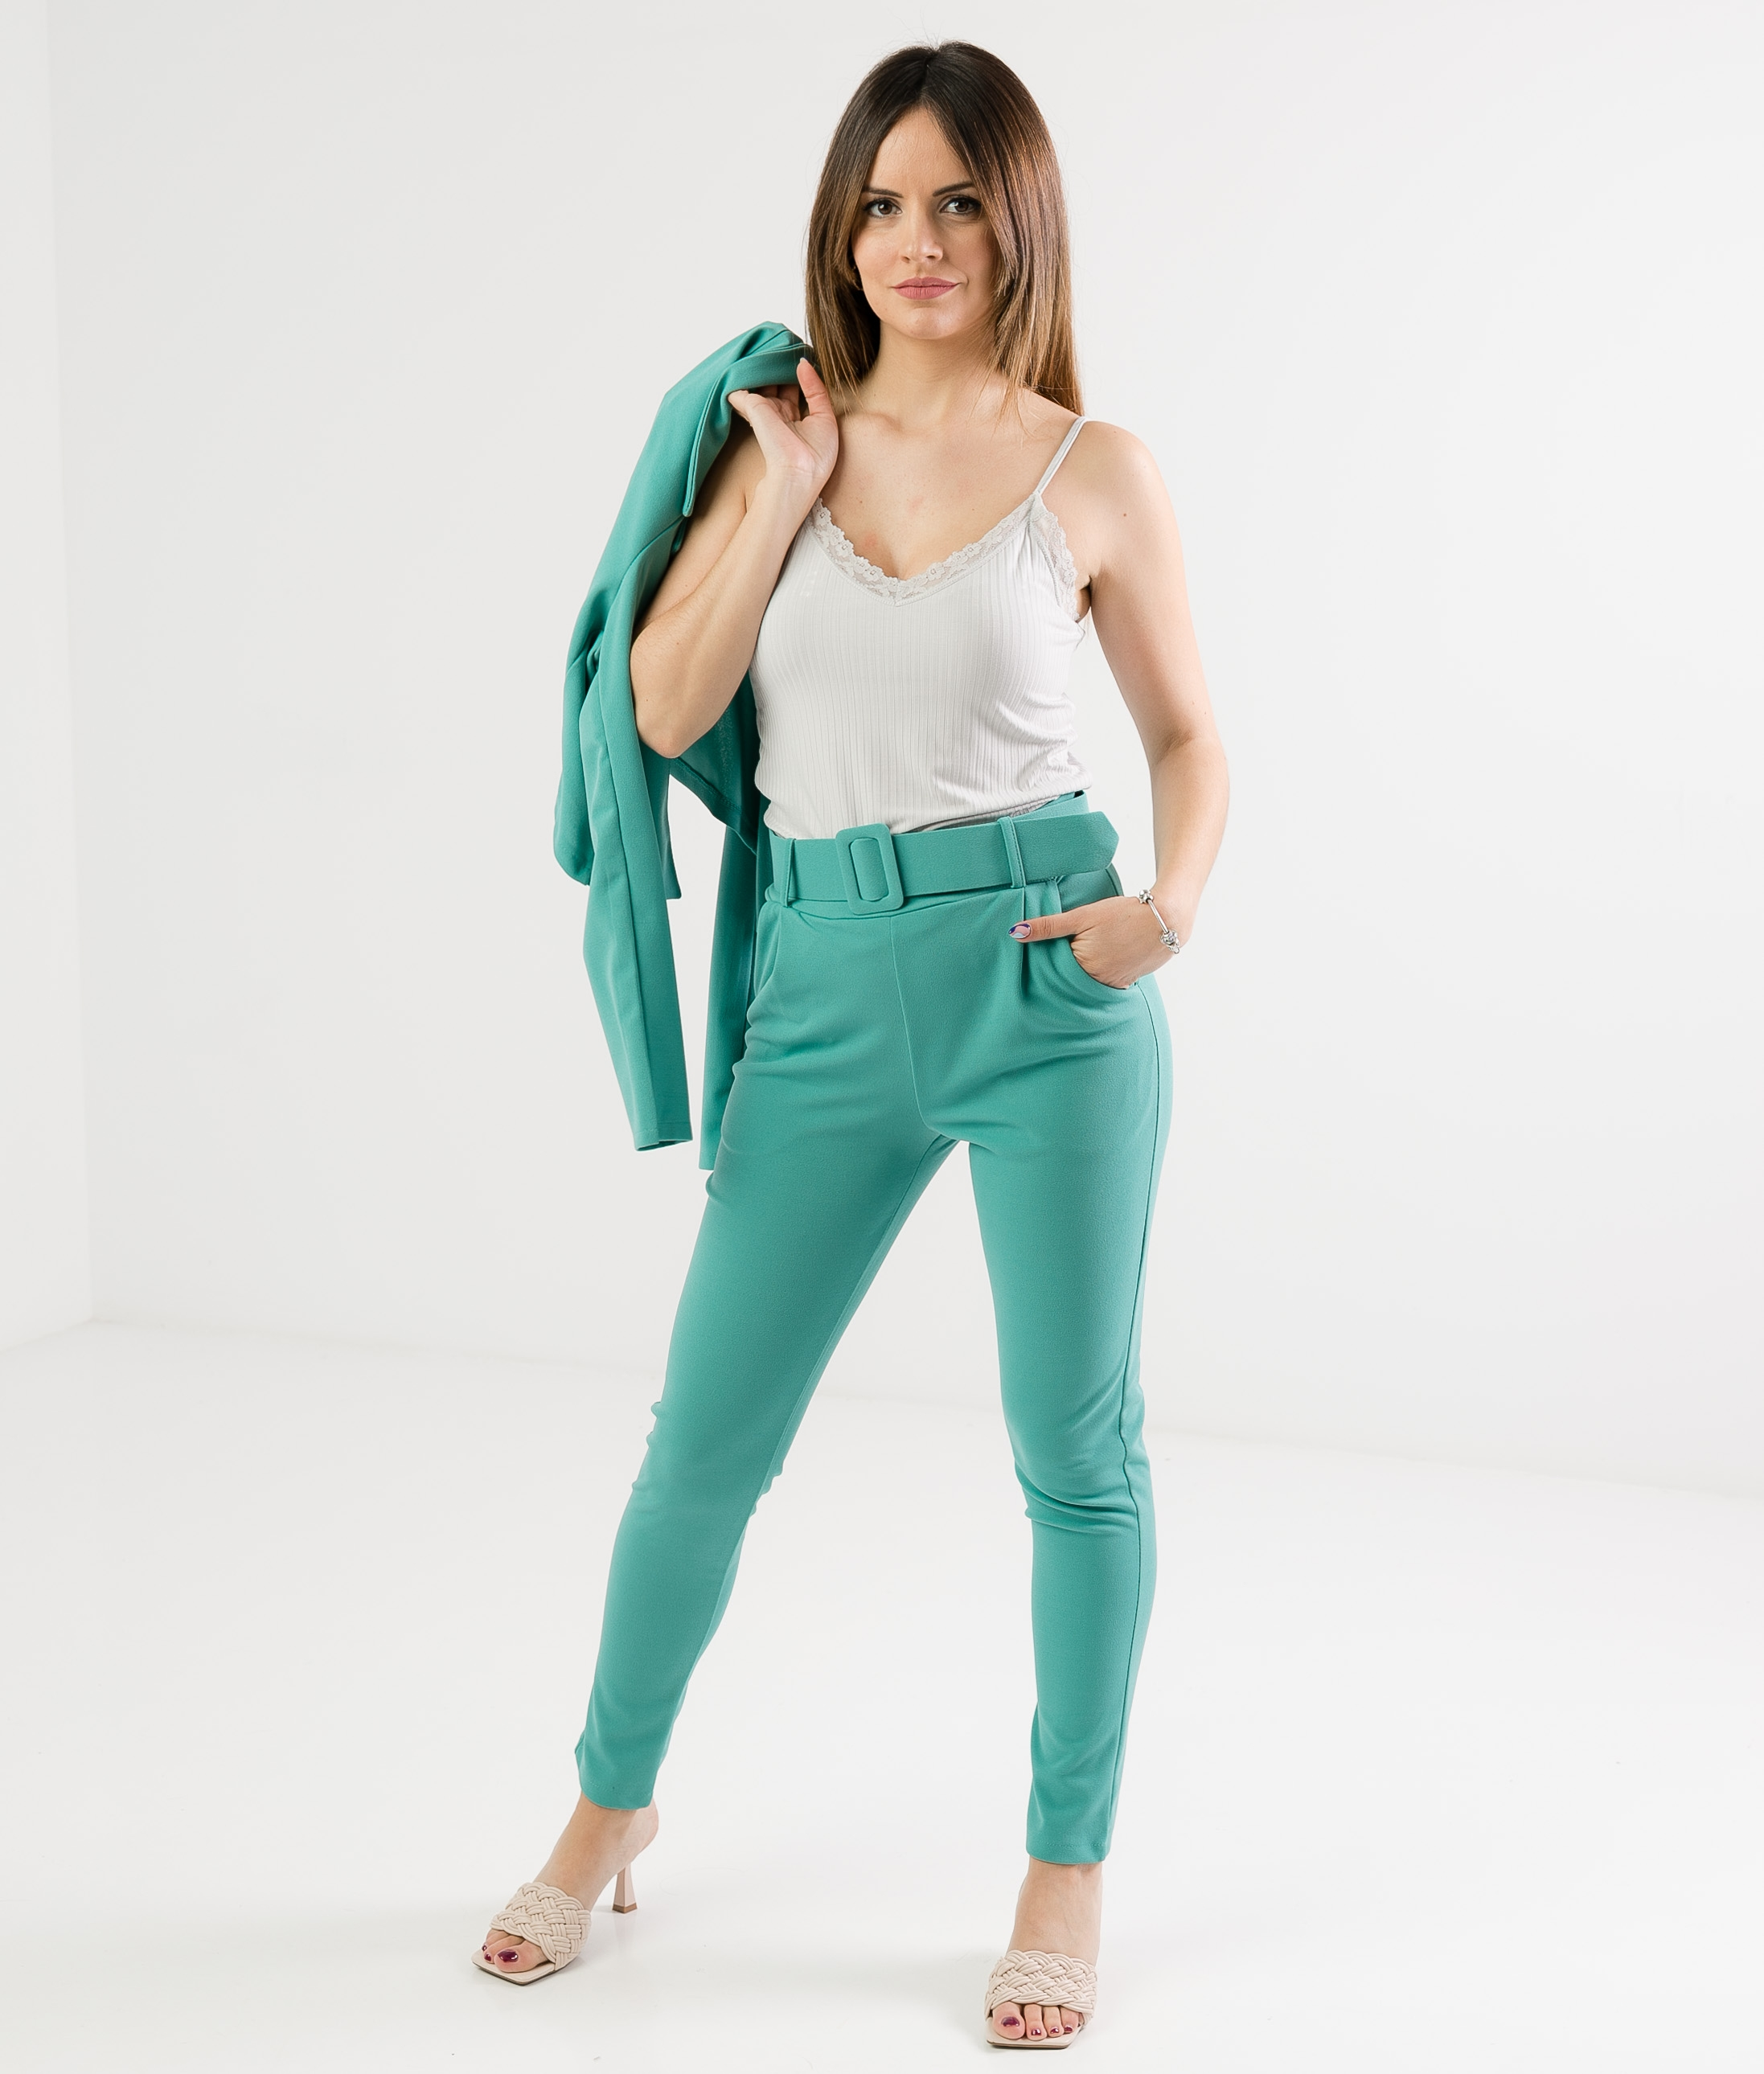 DUKOL OUTFIT - TURQUOISE